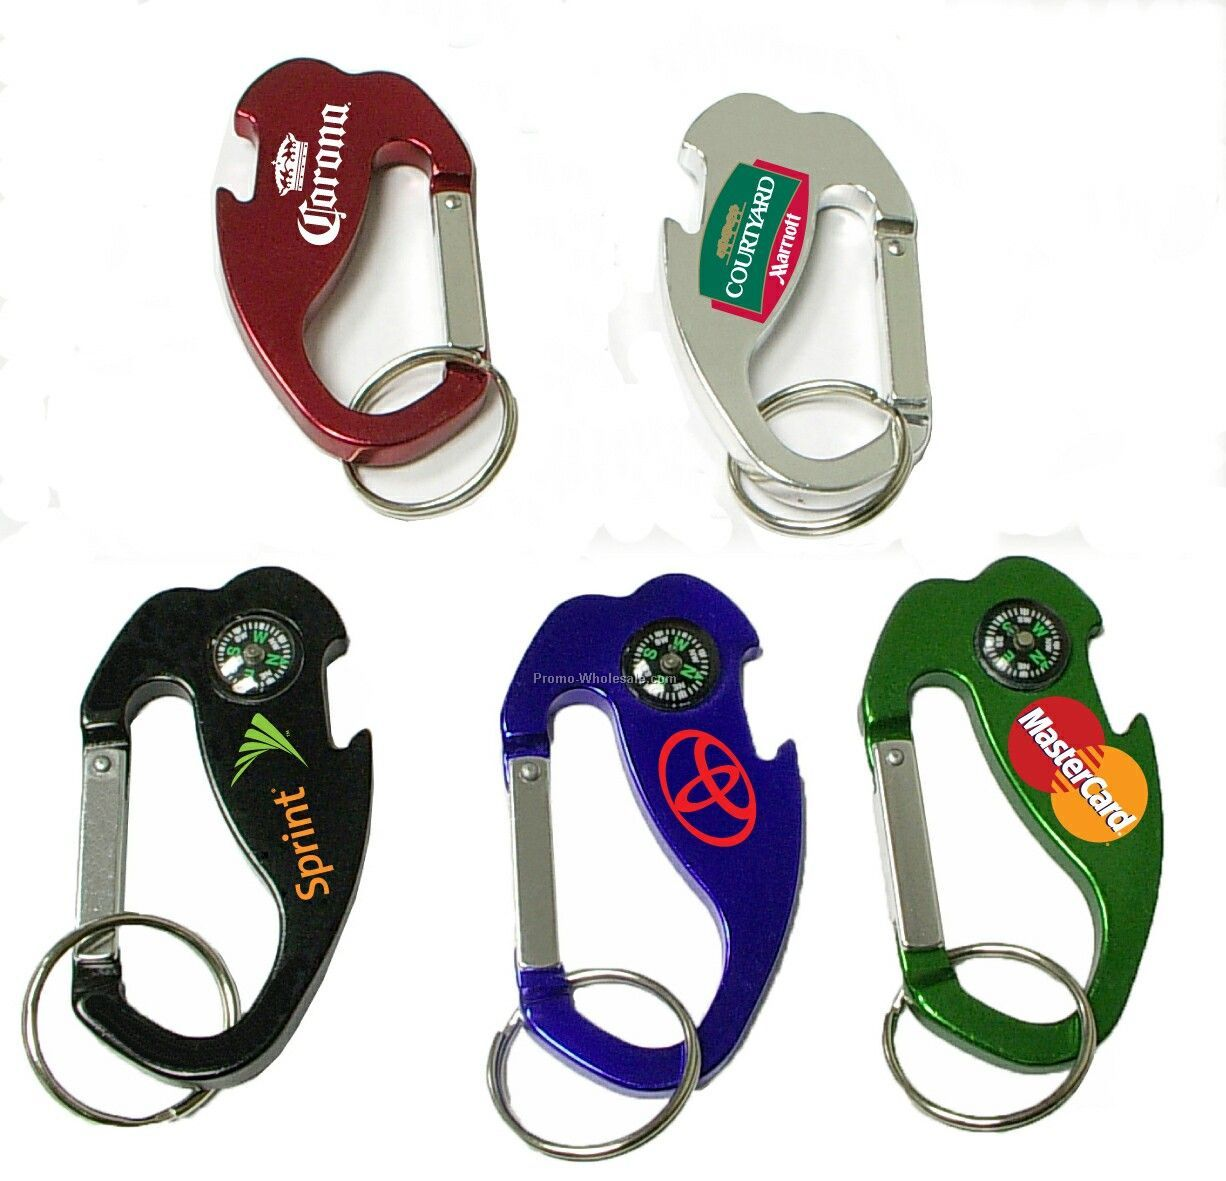 4-in-1 Jumbo Size Carabiner/Bottle Opener/Key Chain/Compass (Large Qty)